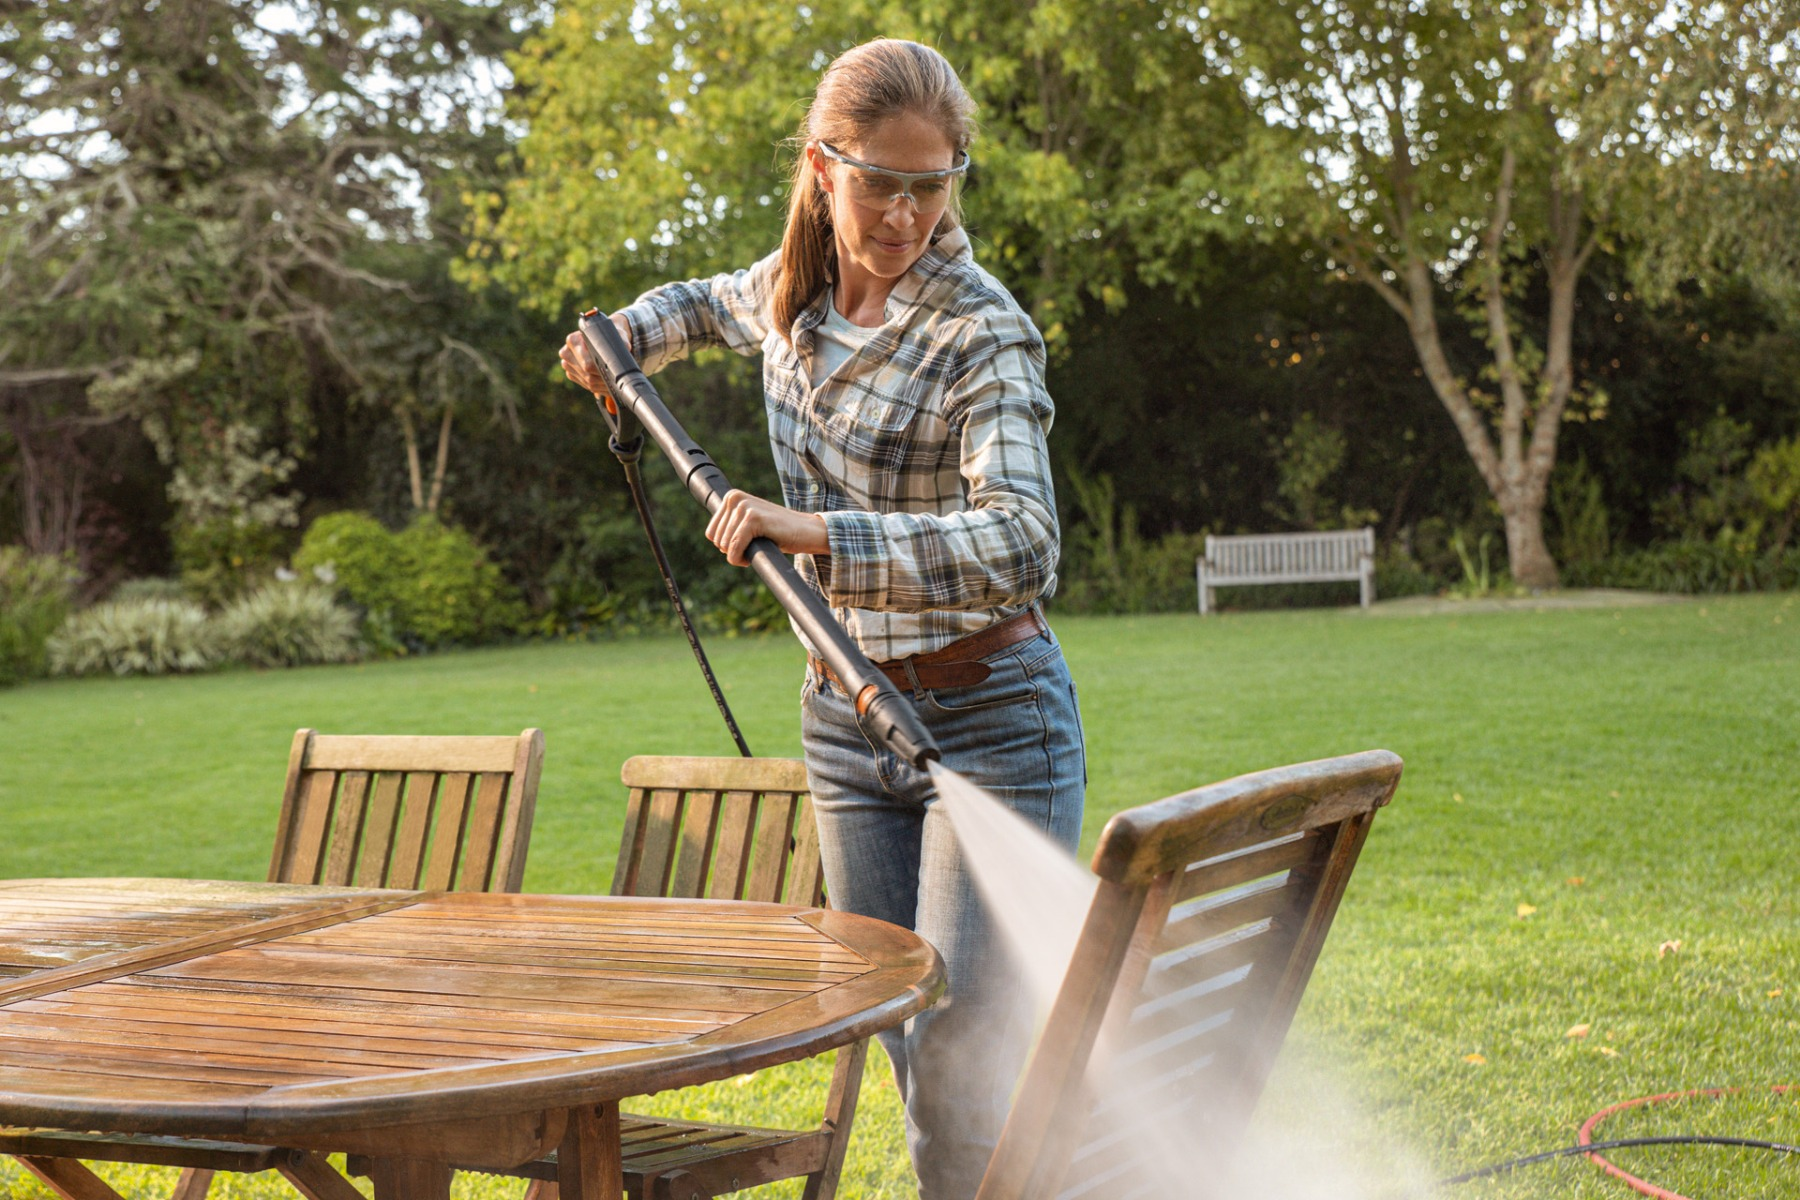 A woman using a STIHL Electric Water Blaster with a fan jet nozzle to clean her wooden outdoor furniture in her garden